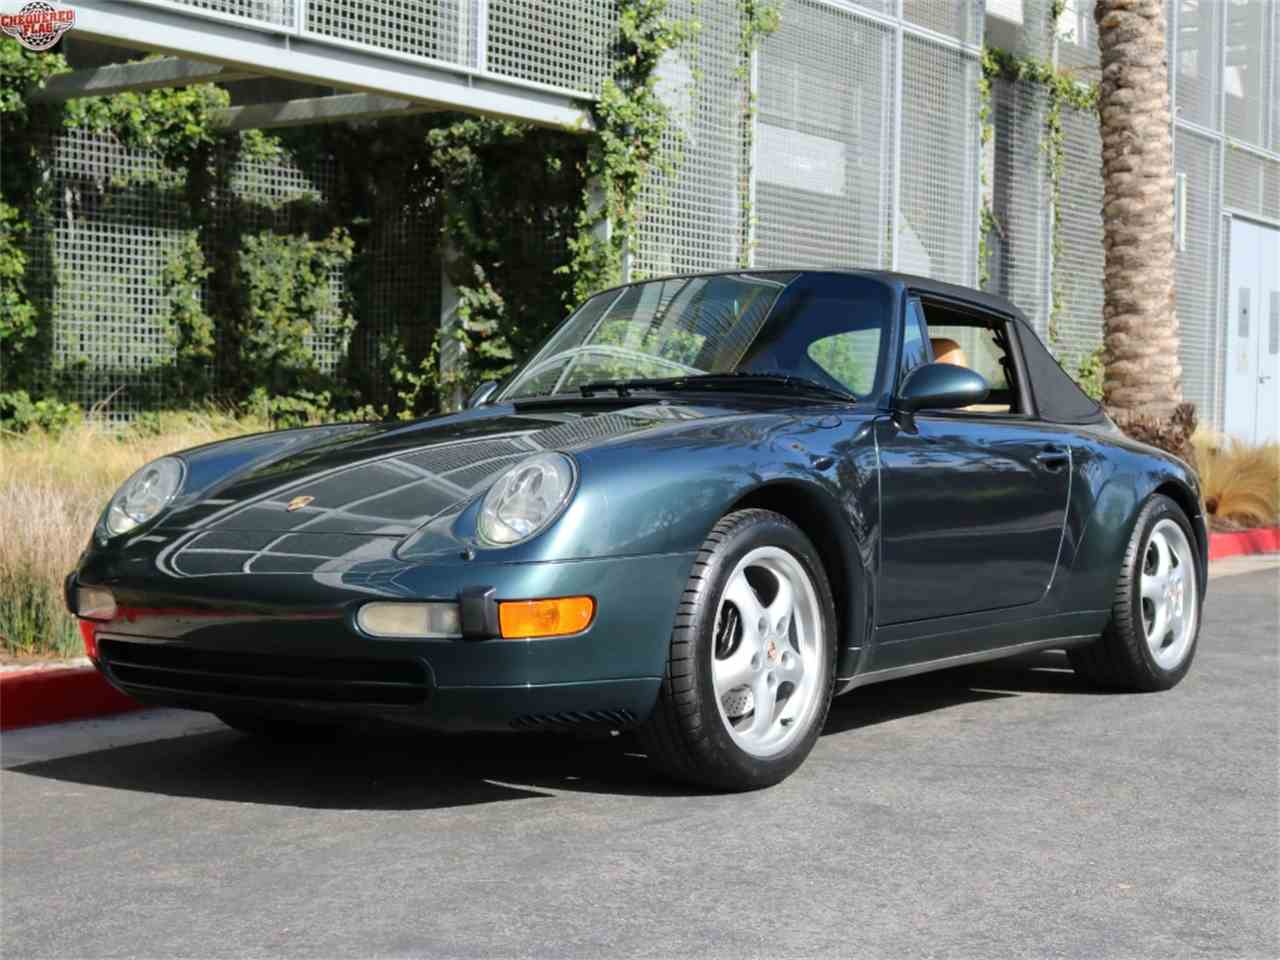 Large Picture of 1995 Porsche 993 located in Marina Del Rey California - $48,500.00 Offered by Chequered Flag International - JPQ2